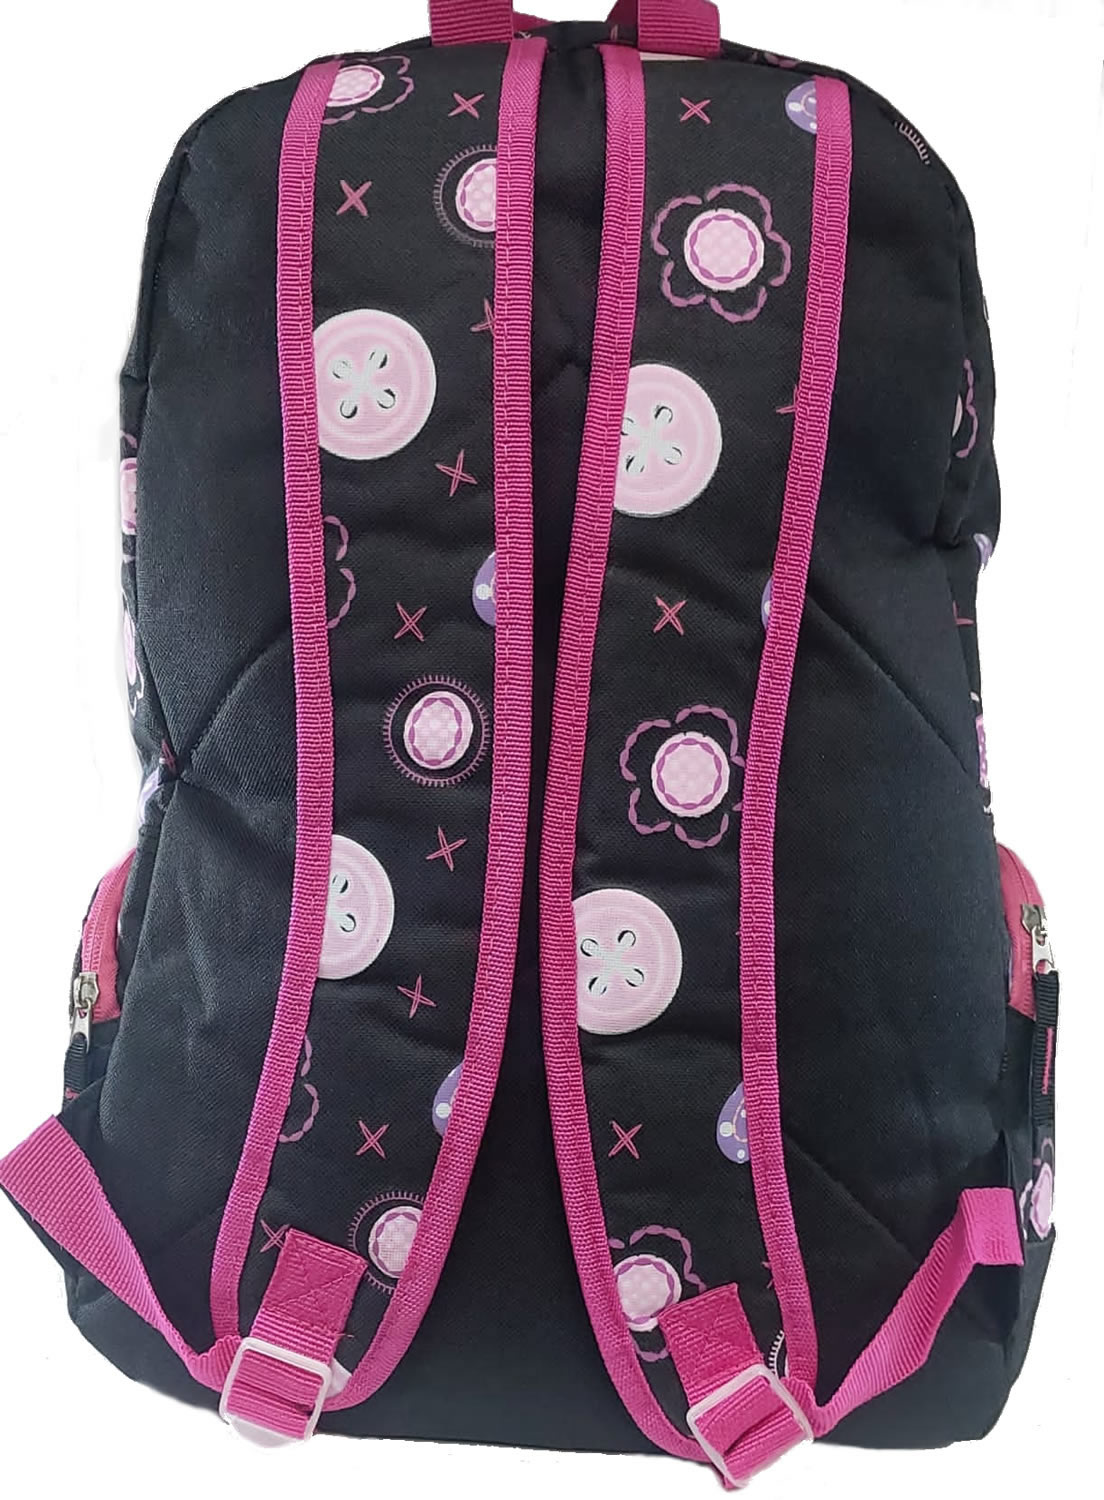 Mochila Feminina de Costas Infantil Teen My Angel SP Express Preto